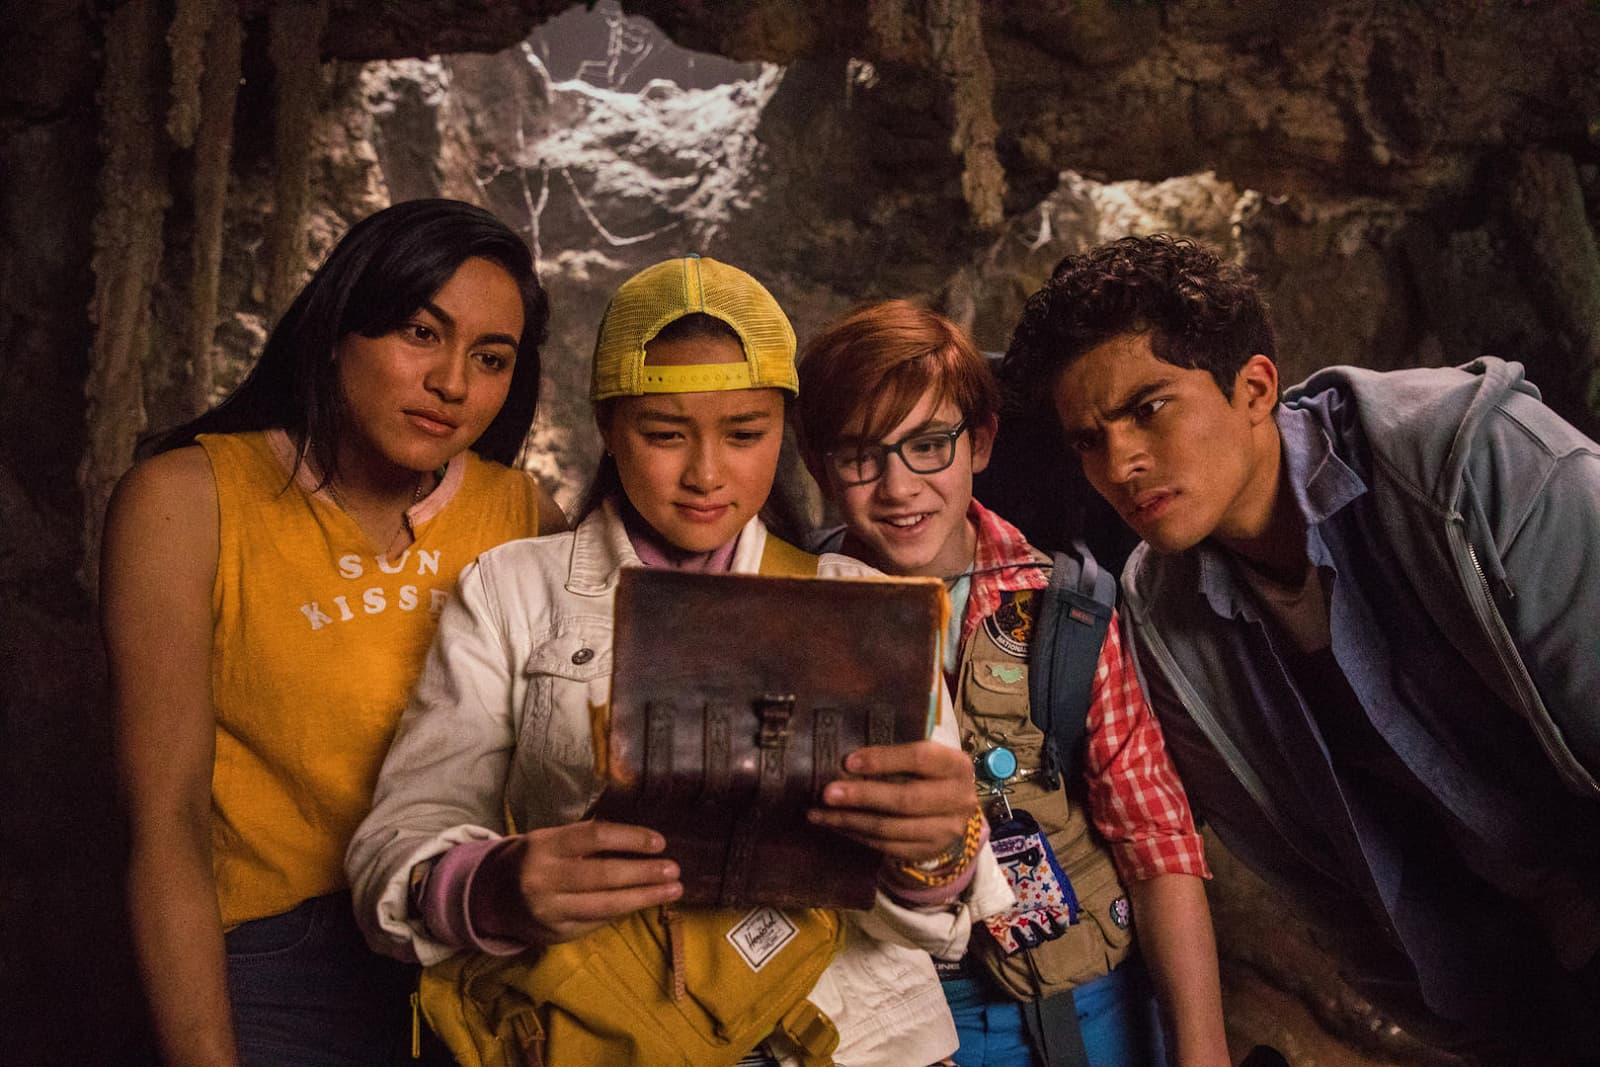 Finding 'Ohana and Geocaching: An Interview with screenwriter Christina Strain and Director Jude Weng